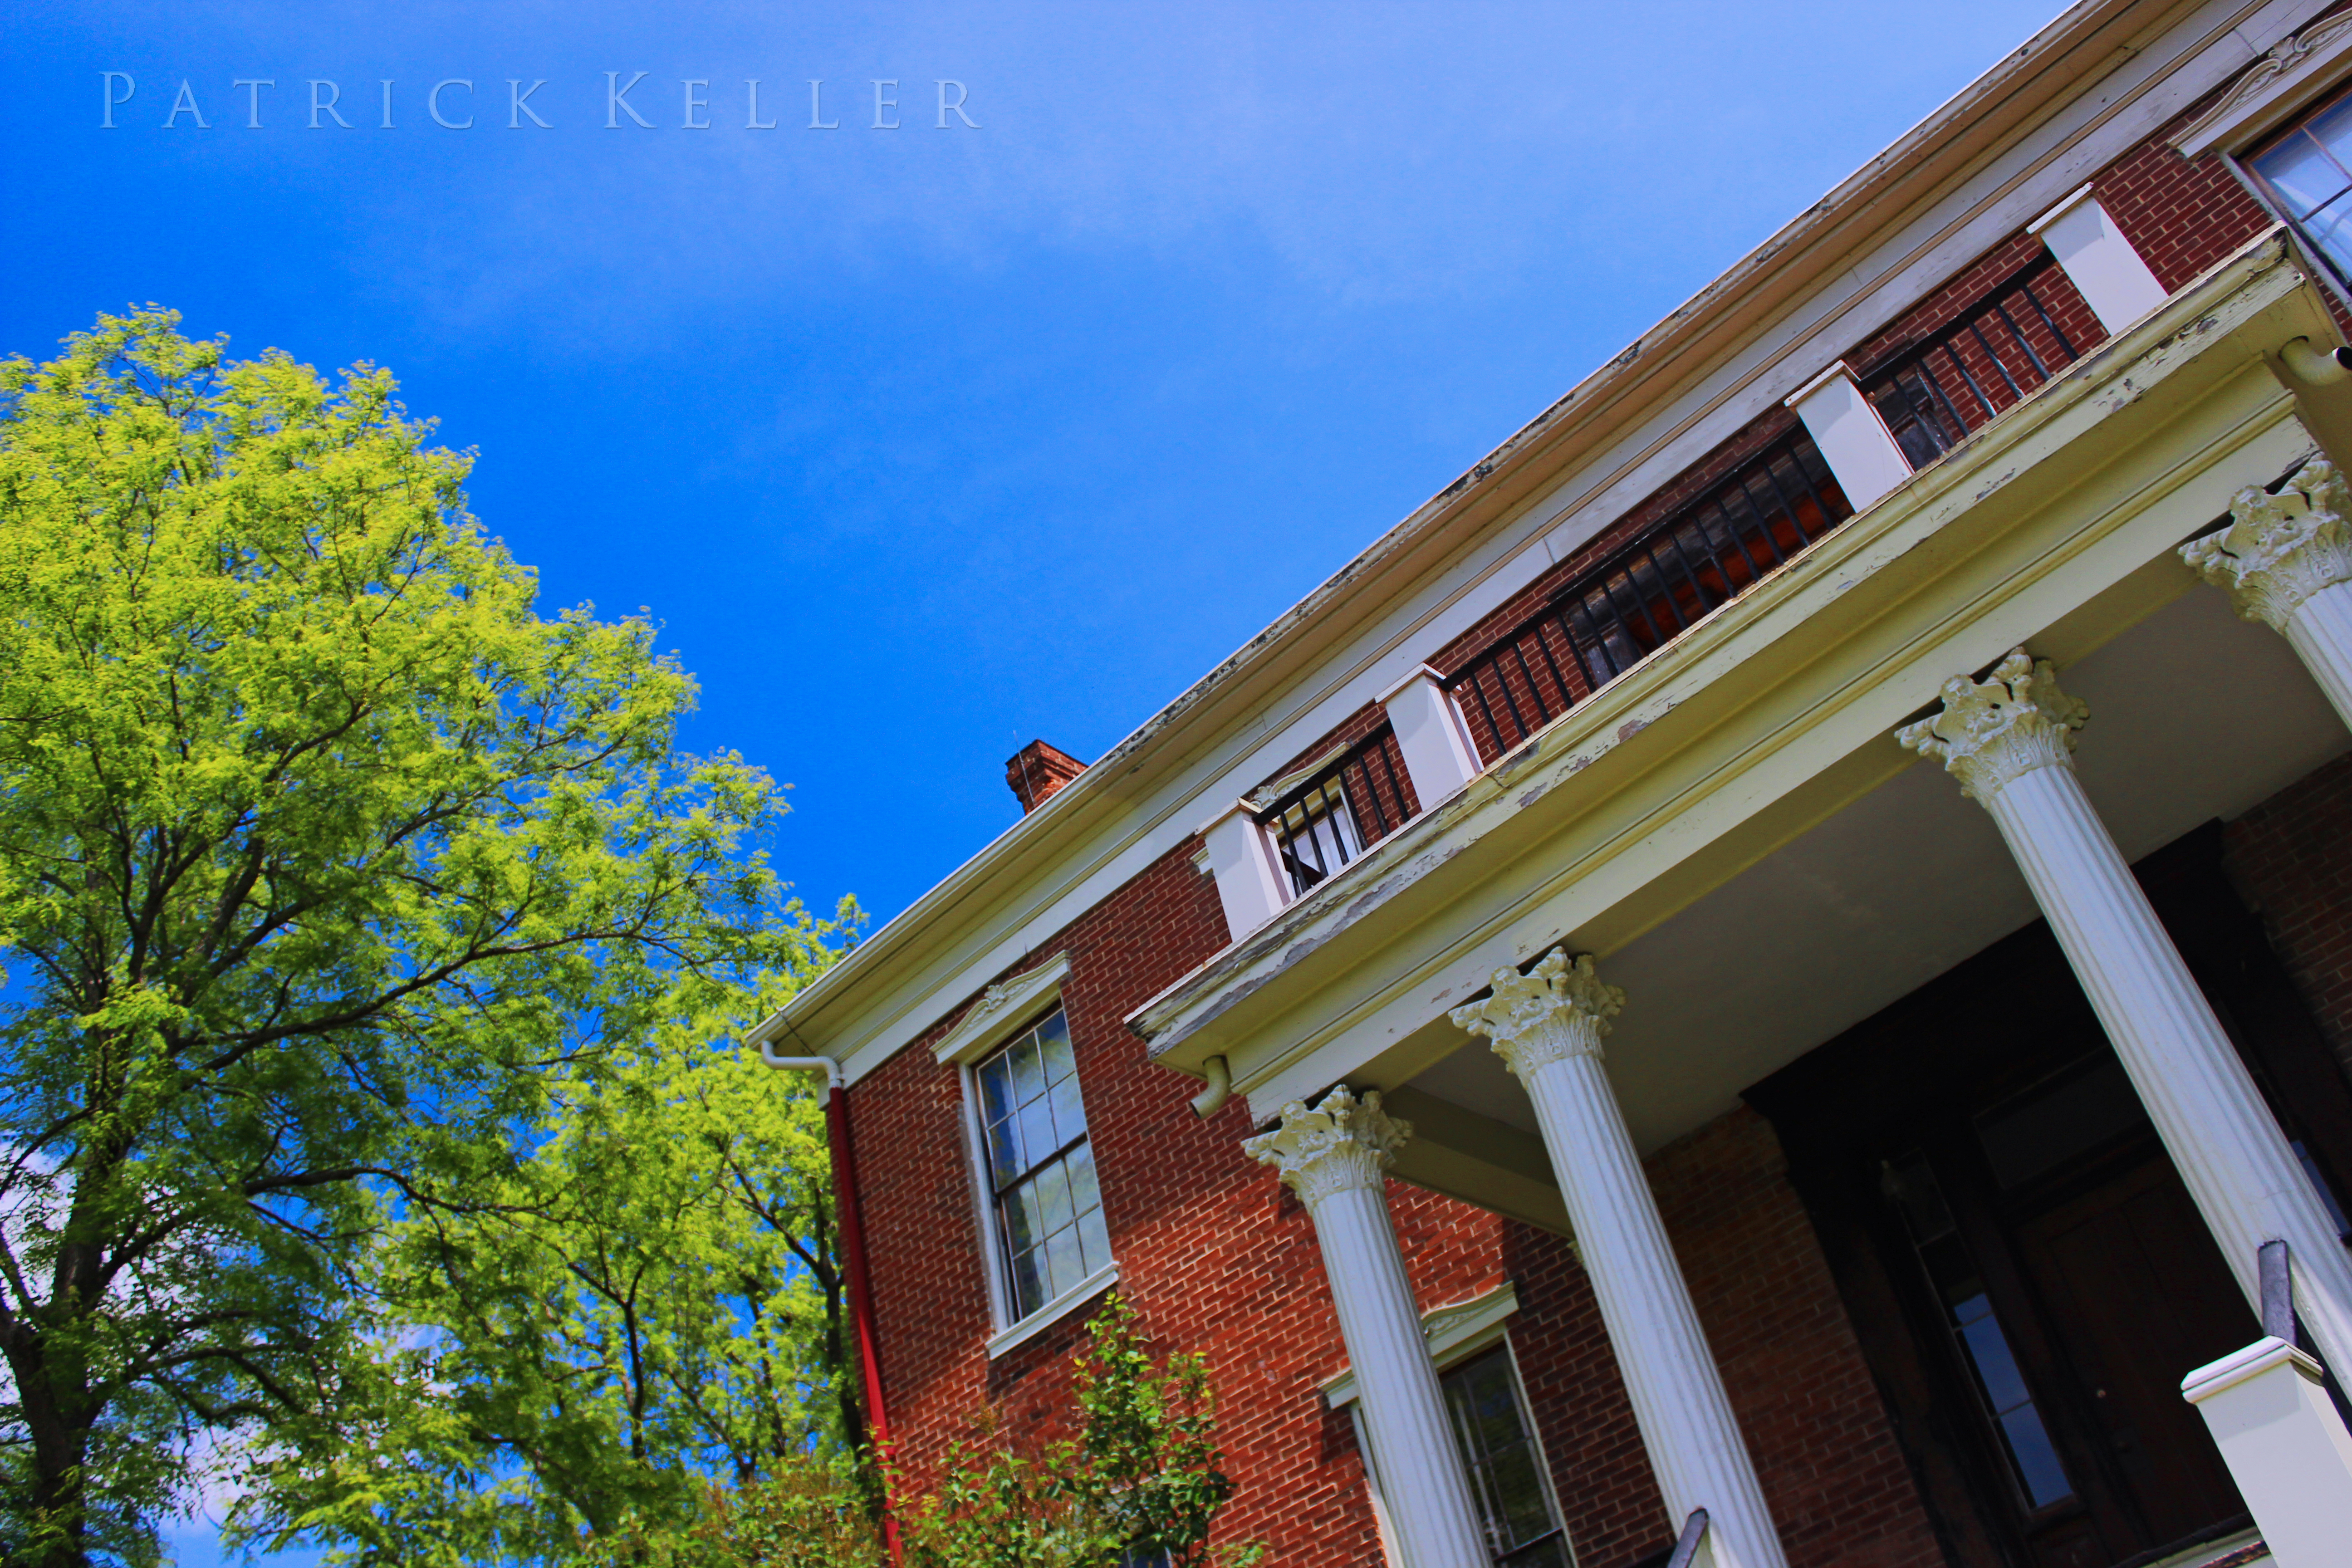 The Anderson House and the Battle of Lexington State Historic Site